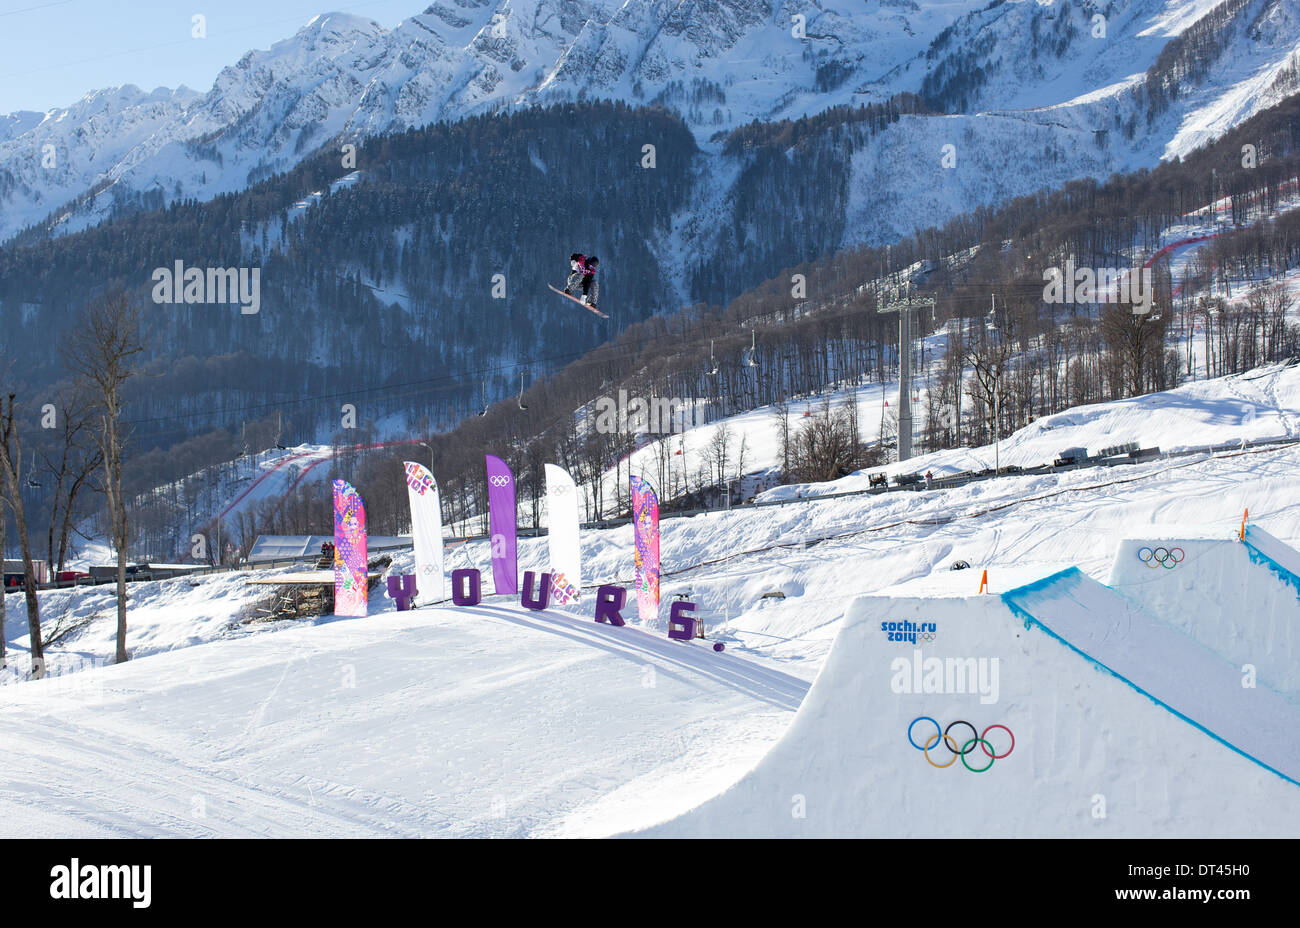 Sochi, Russia. 08th Feb, 2014. Men's Snowboard Slopestyle Semi-Finals in Rosa Khutor Extreme Park. Janne Korpi's Second run. The Finnish rider earned only 10th place in his heat, knocking him out of the final. Credit:  Action Plus Sports/Alamy Live News - Stock Image